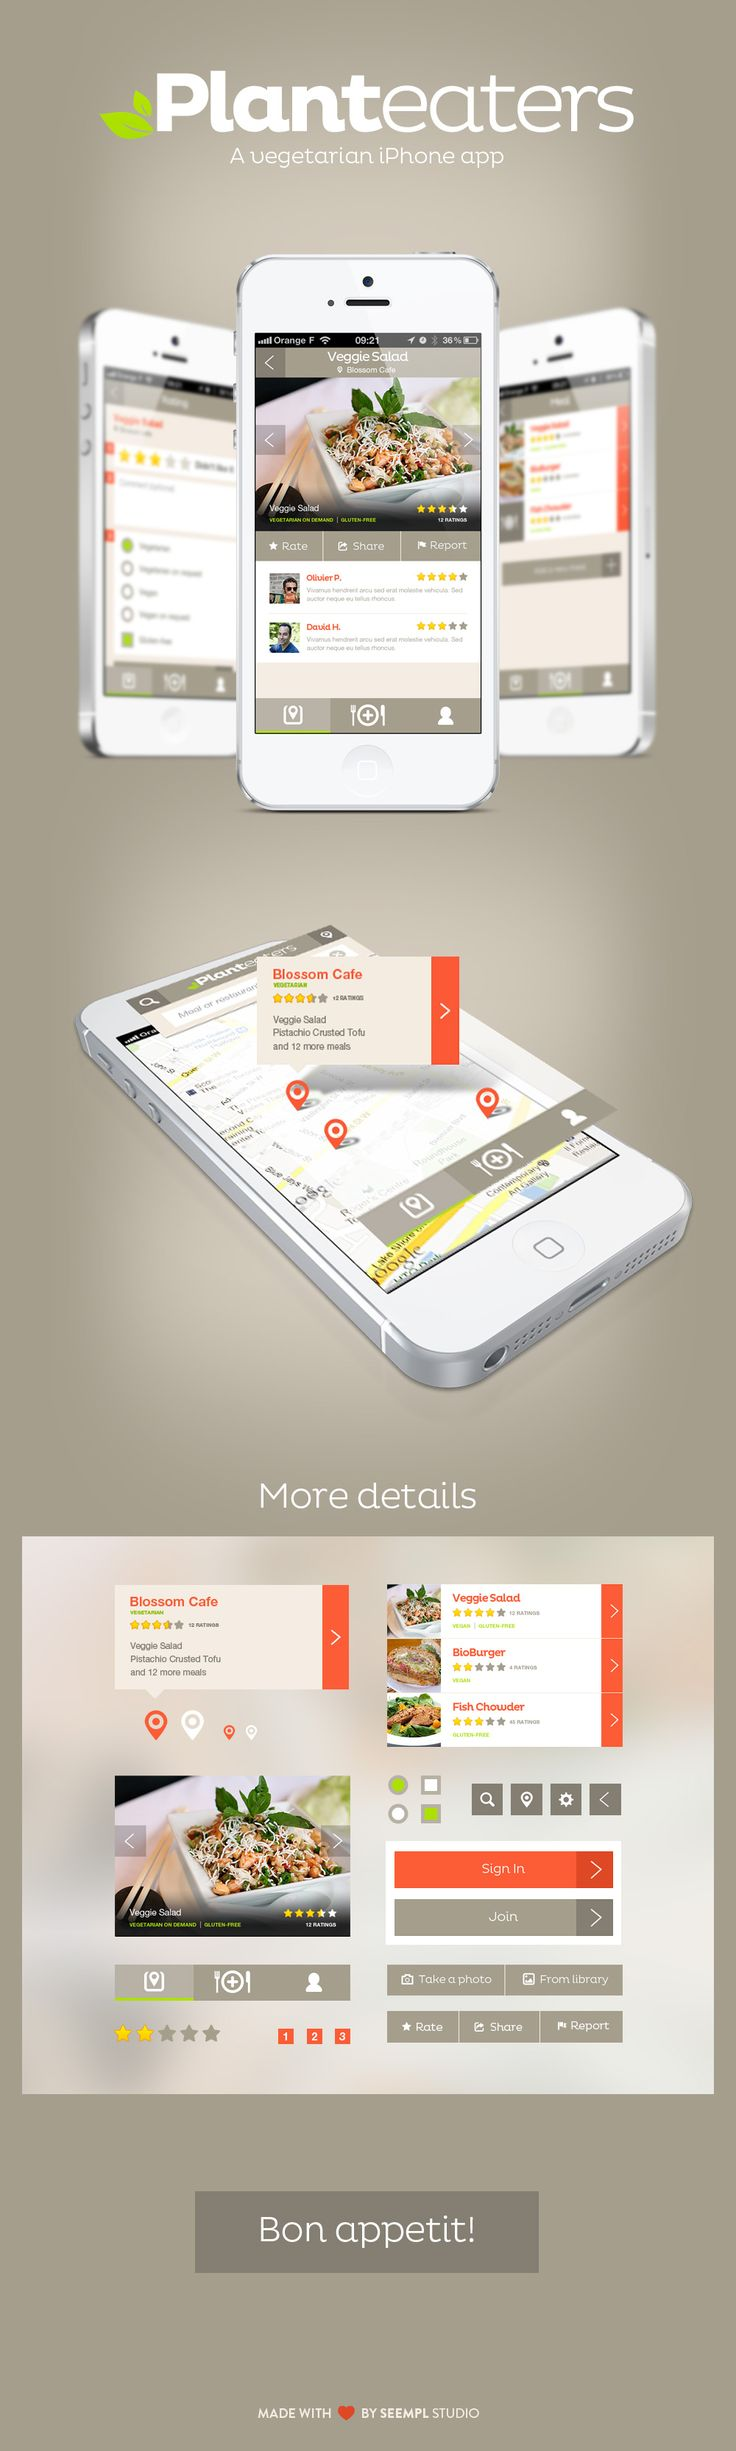 Planteaters #food #app #iphone #inspiration #ux